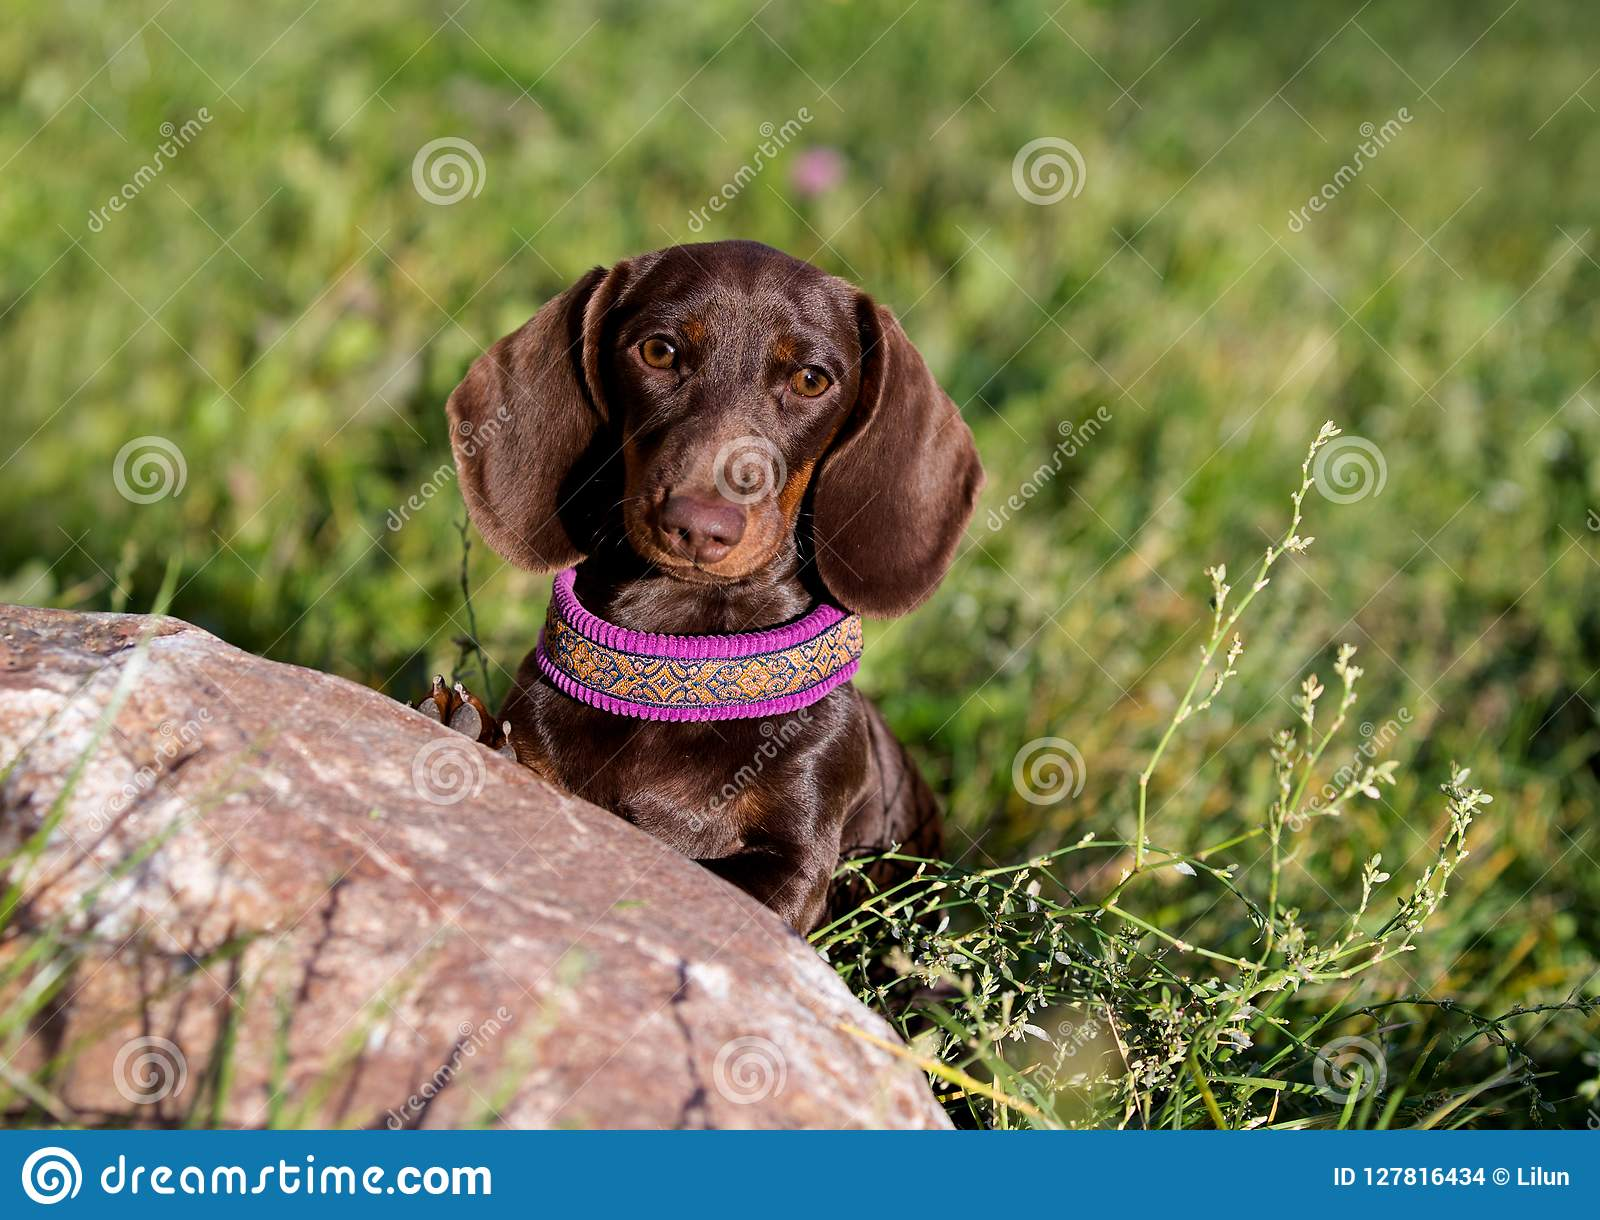 Brobn Dachshunds puppy the background of a green meadow